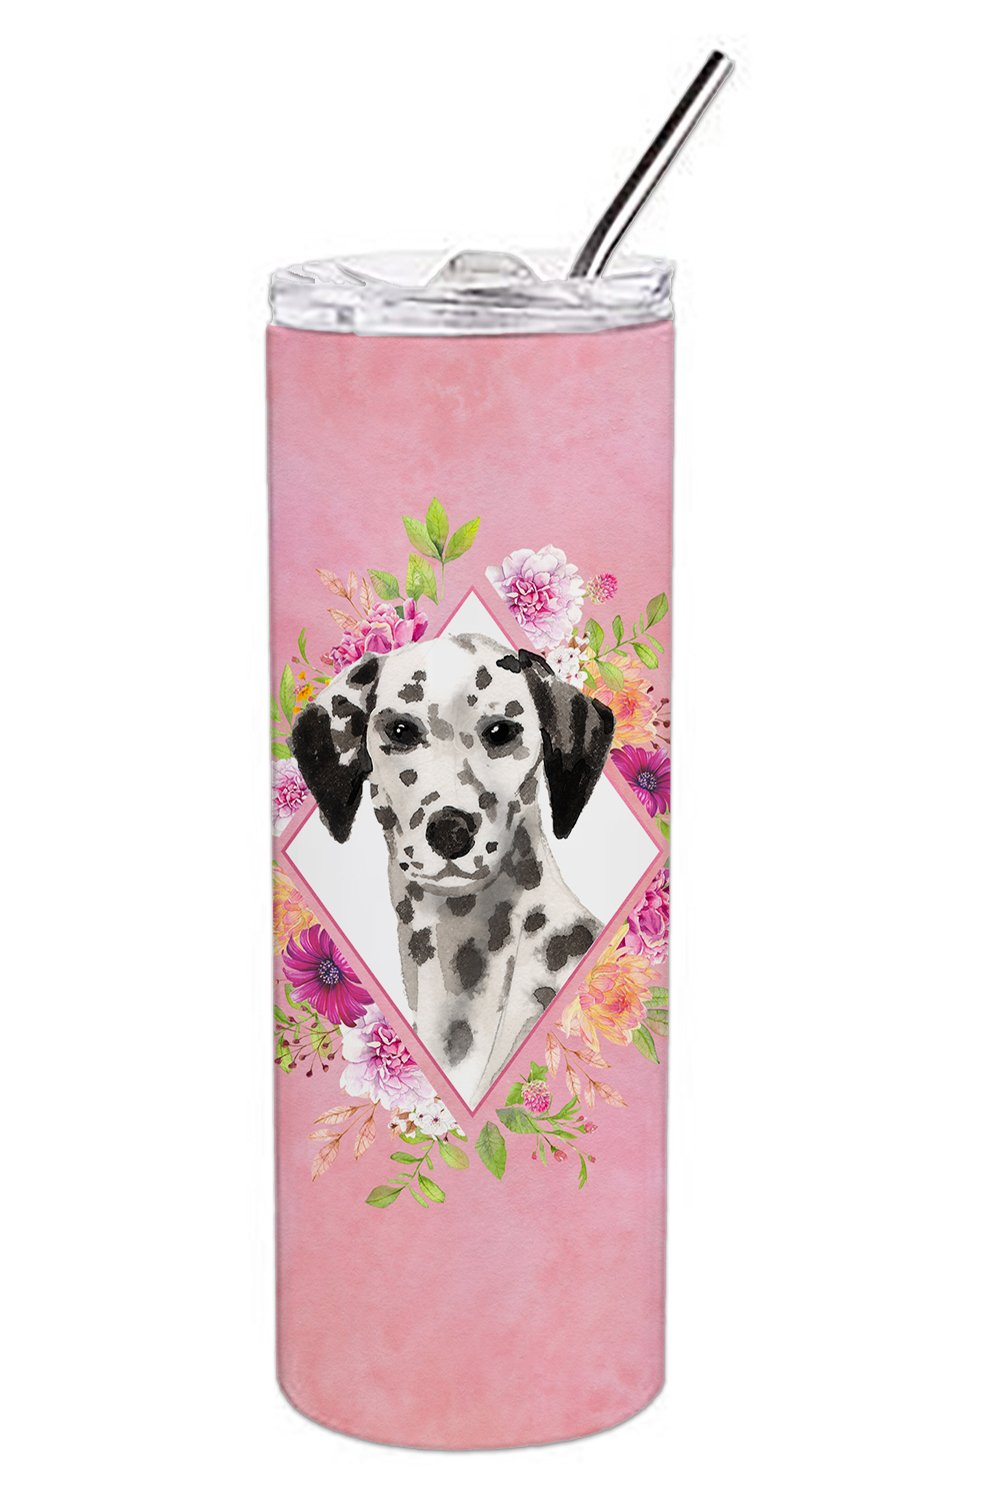 Dalmatian Pink Flowers Double Walled Stainless Steel 20 oz Skinny Tumbler CK4242TBL20 by Caroline's Treasures